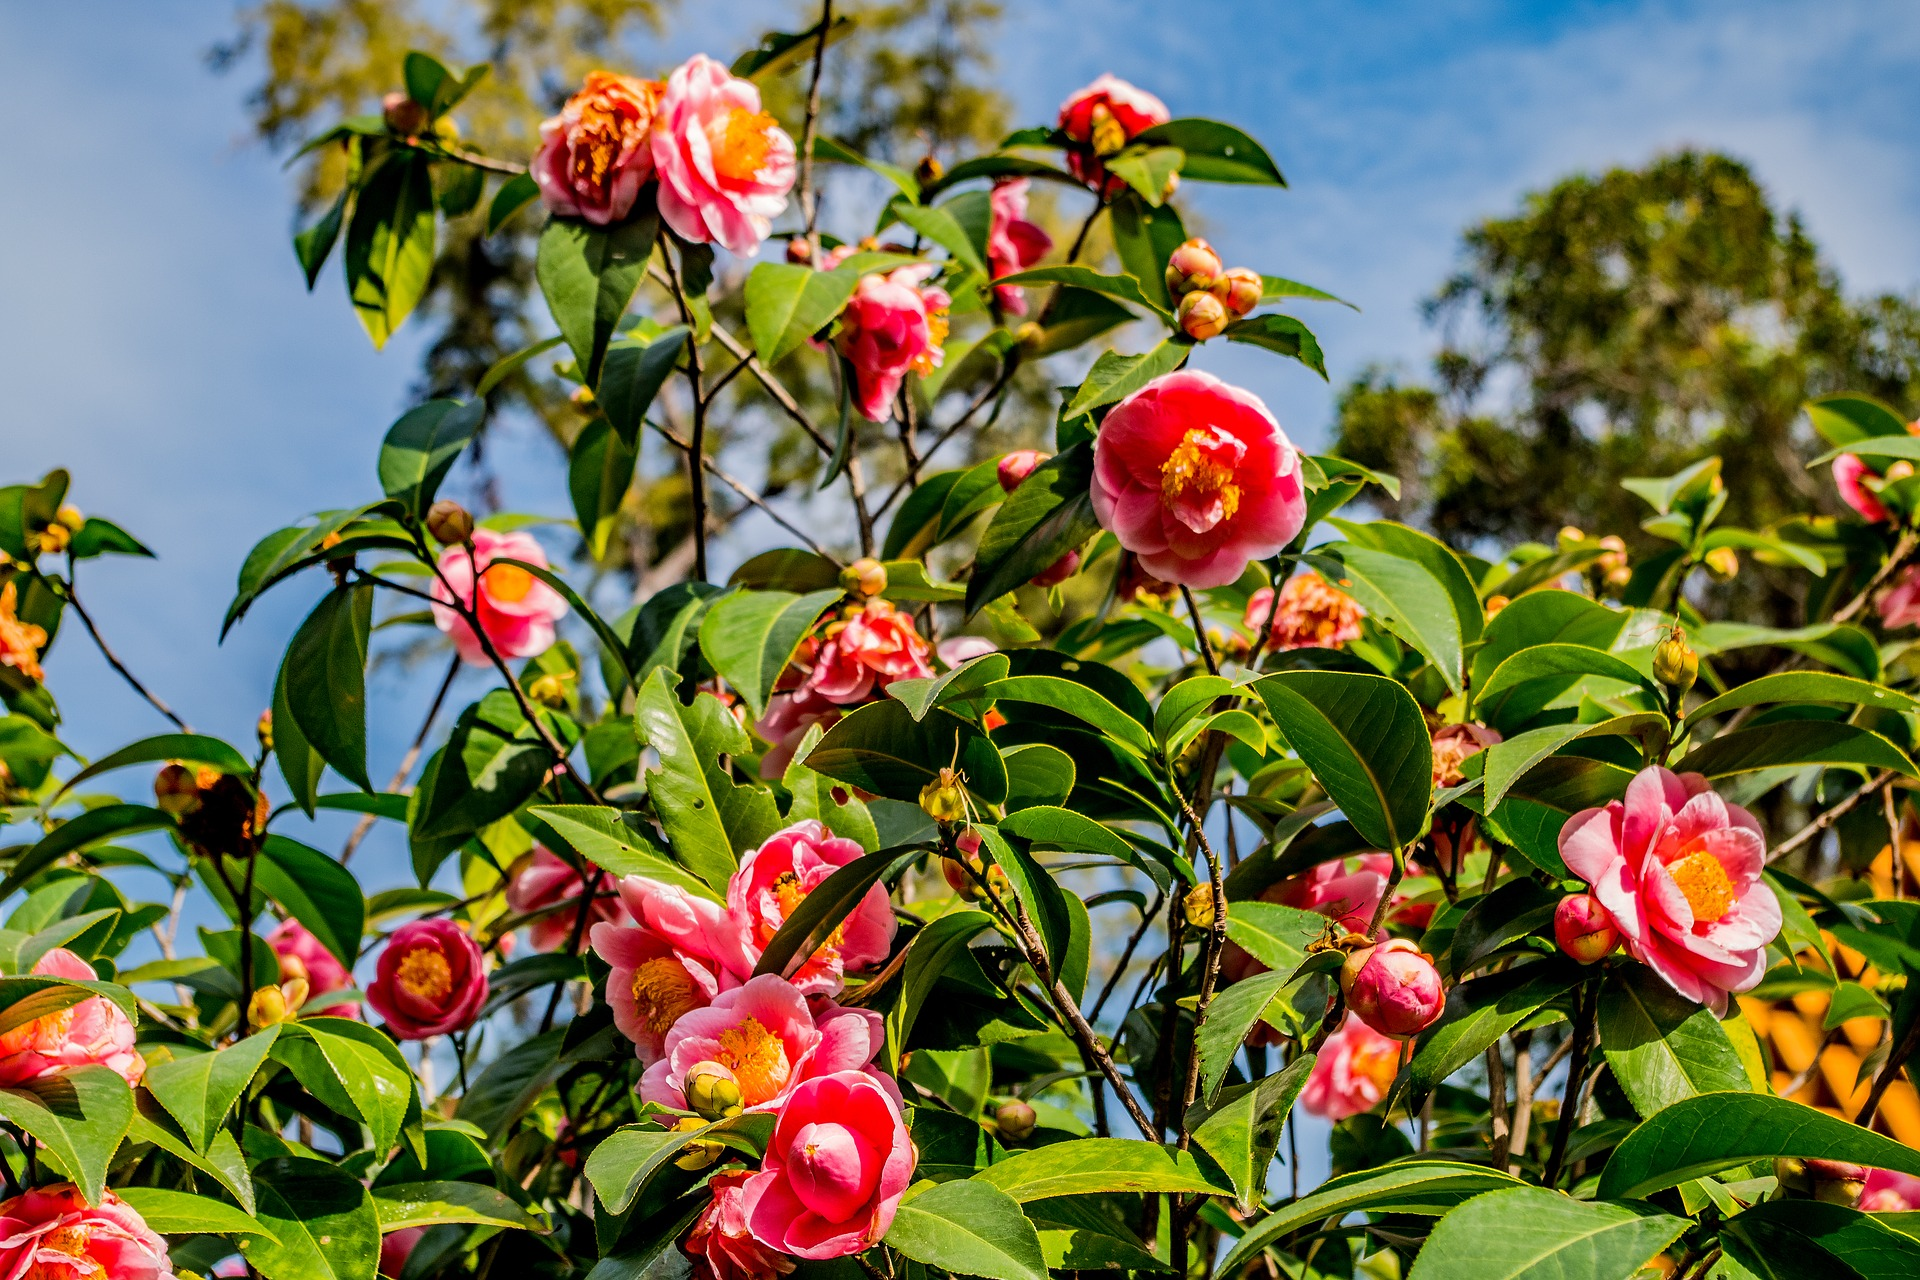 camellias-3983698_1920